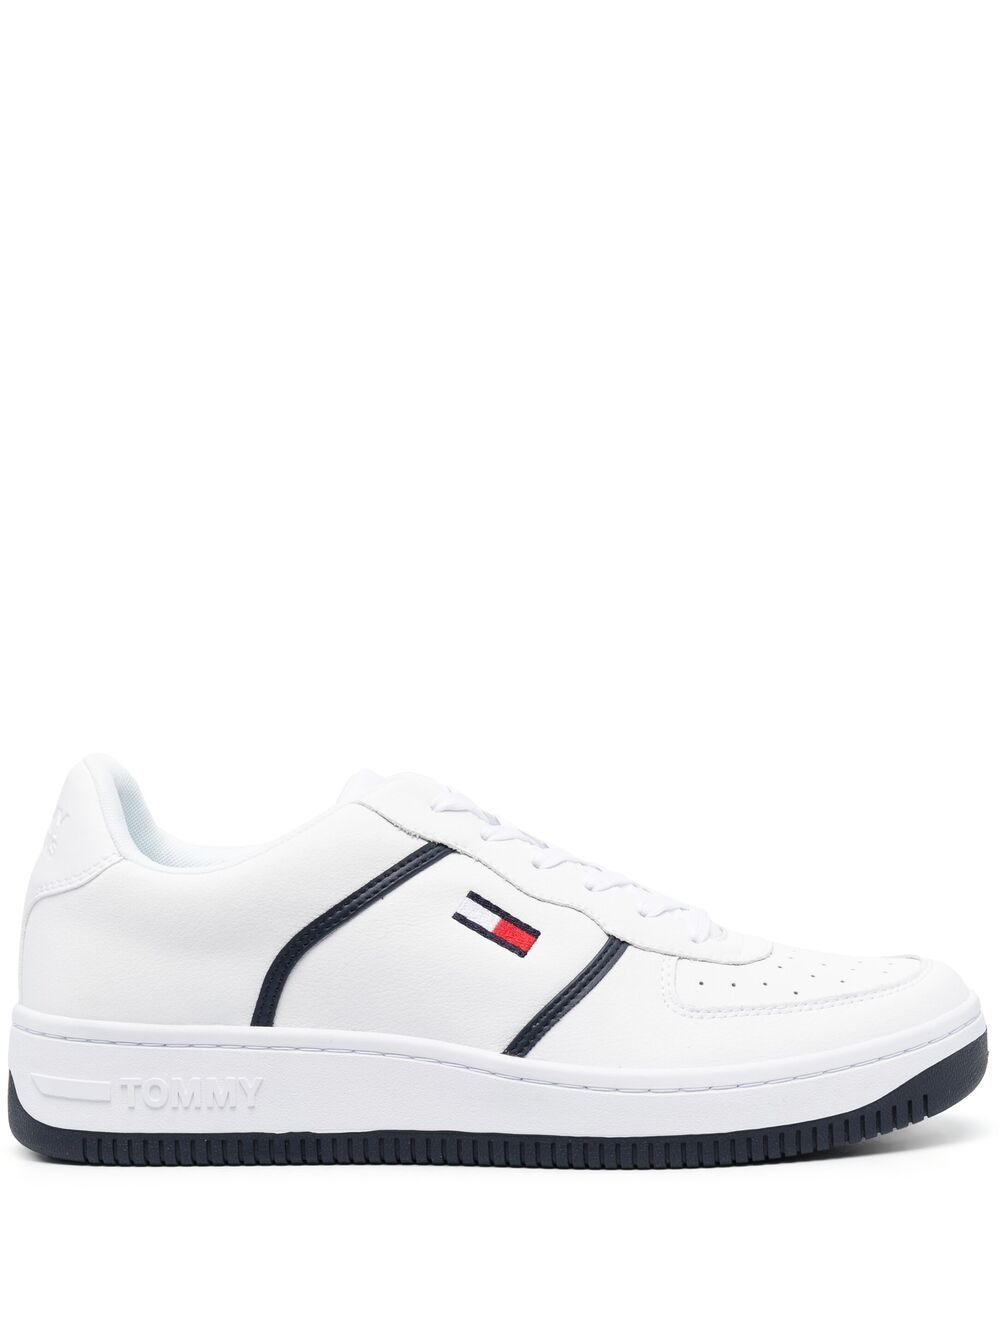 Tommy Jeans leather low-top sneakers - White von Tommy Jeans